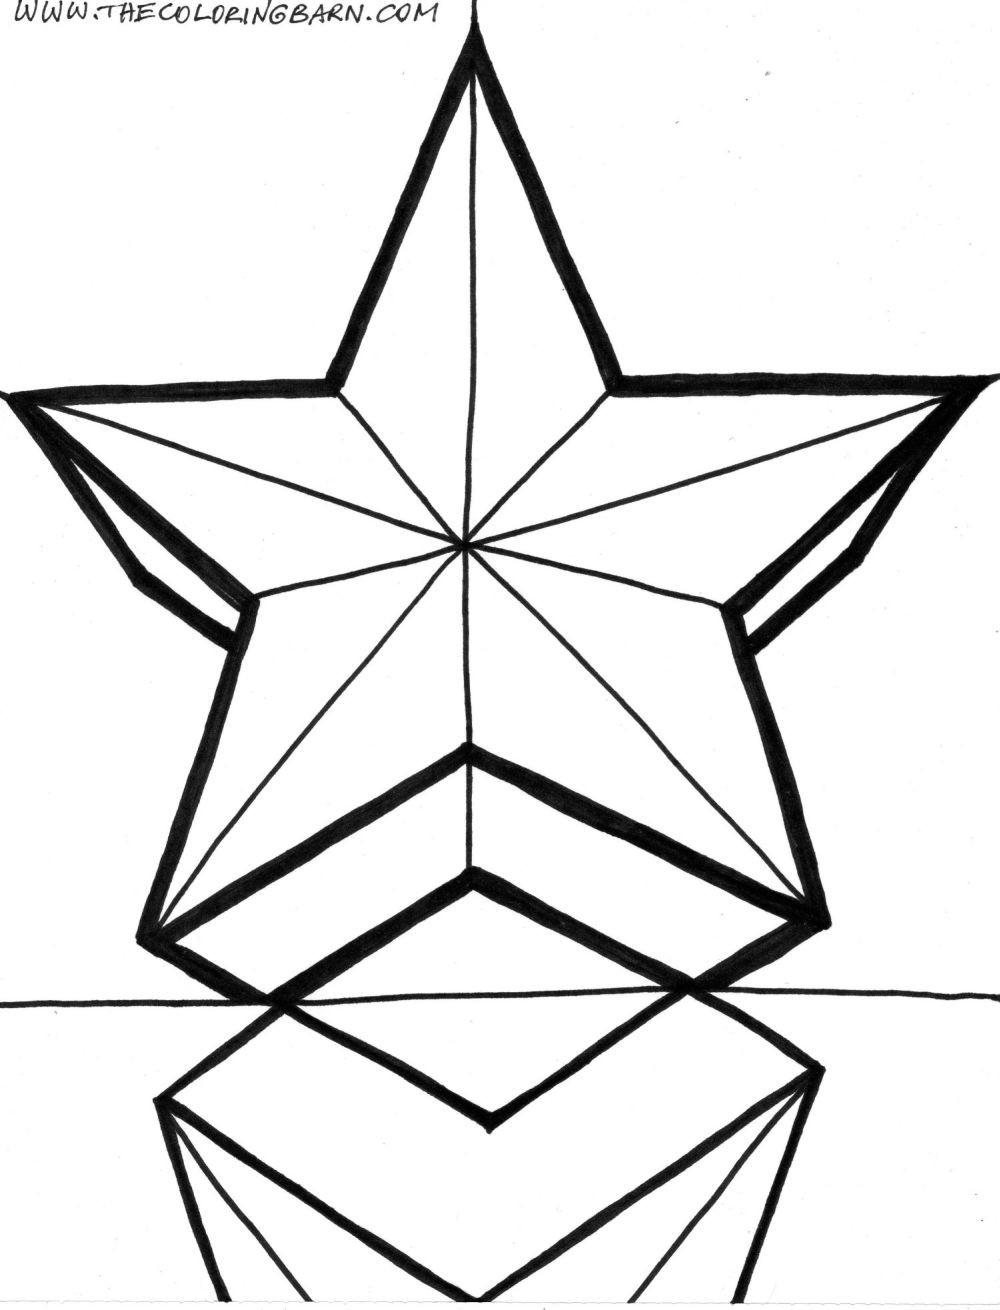 Coloring Book Pages Of Stars  Free Shooting Star Coloring Page Download Free Clip Art